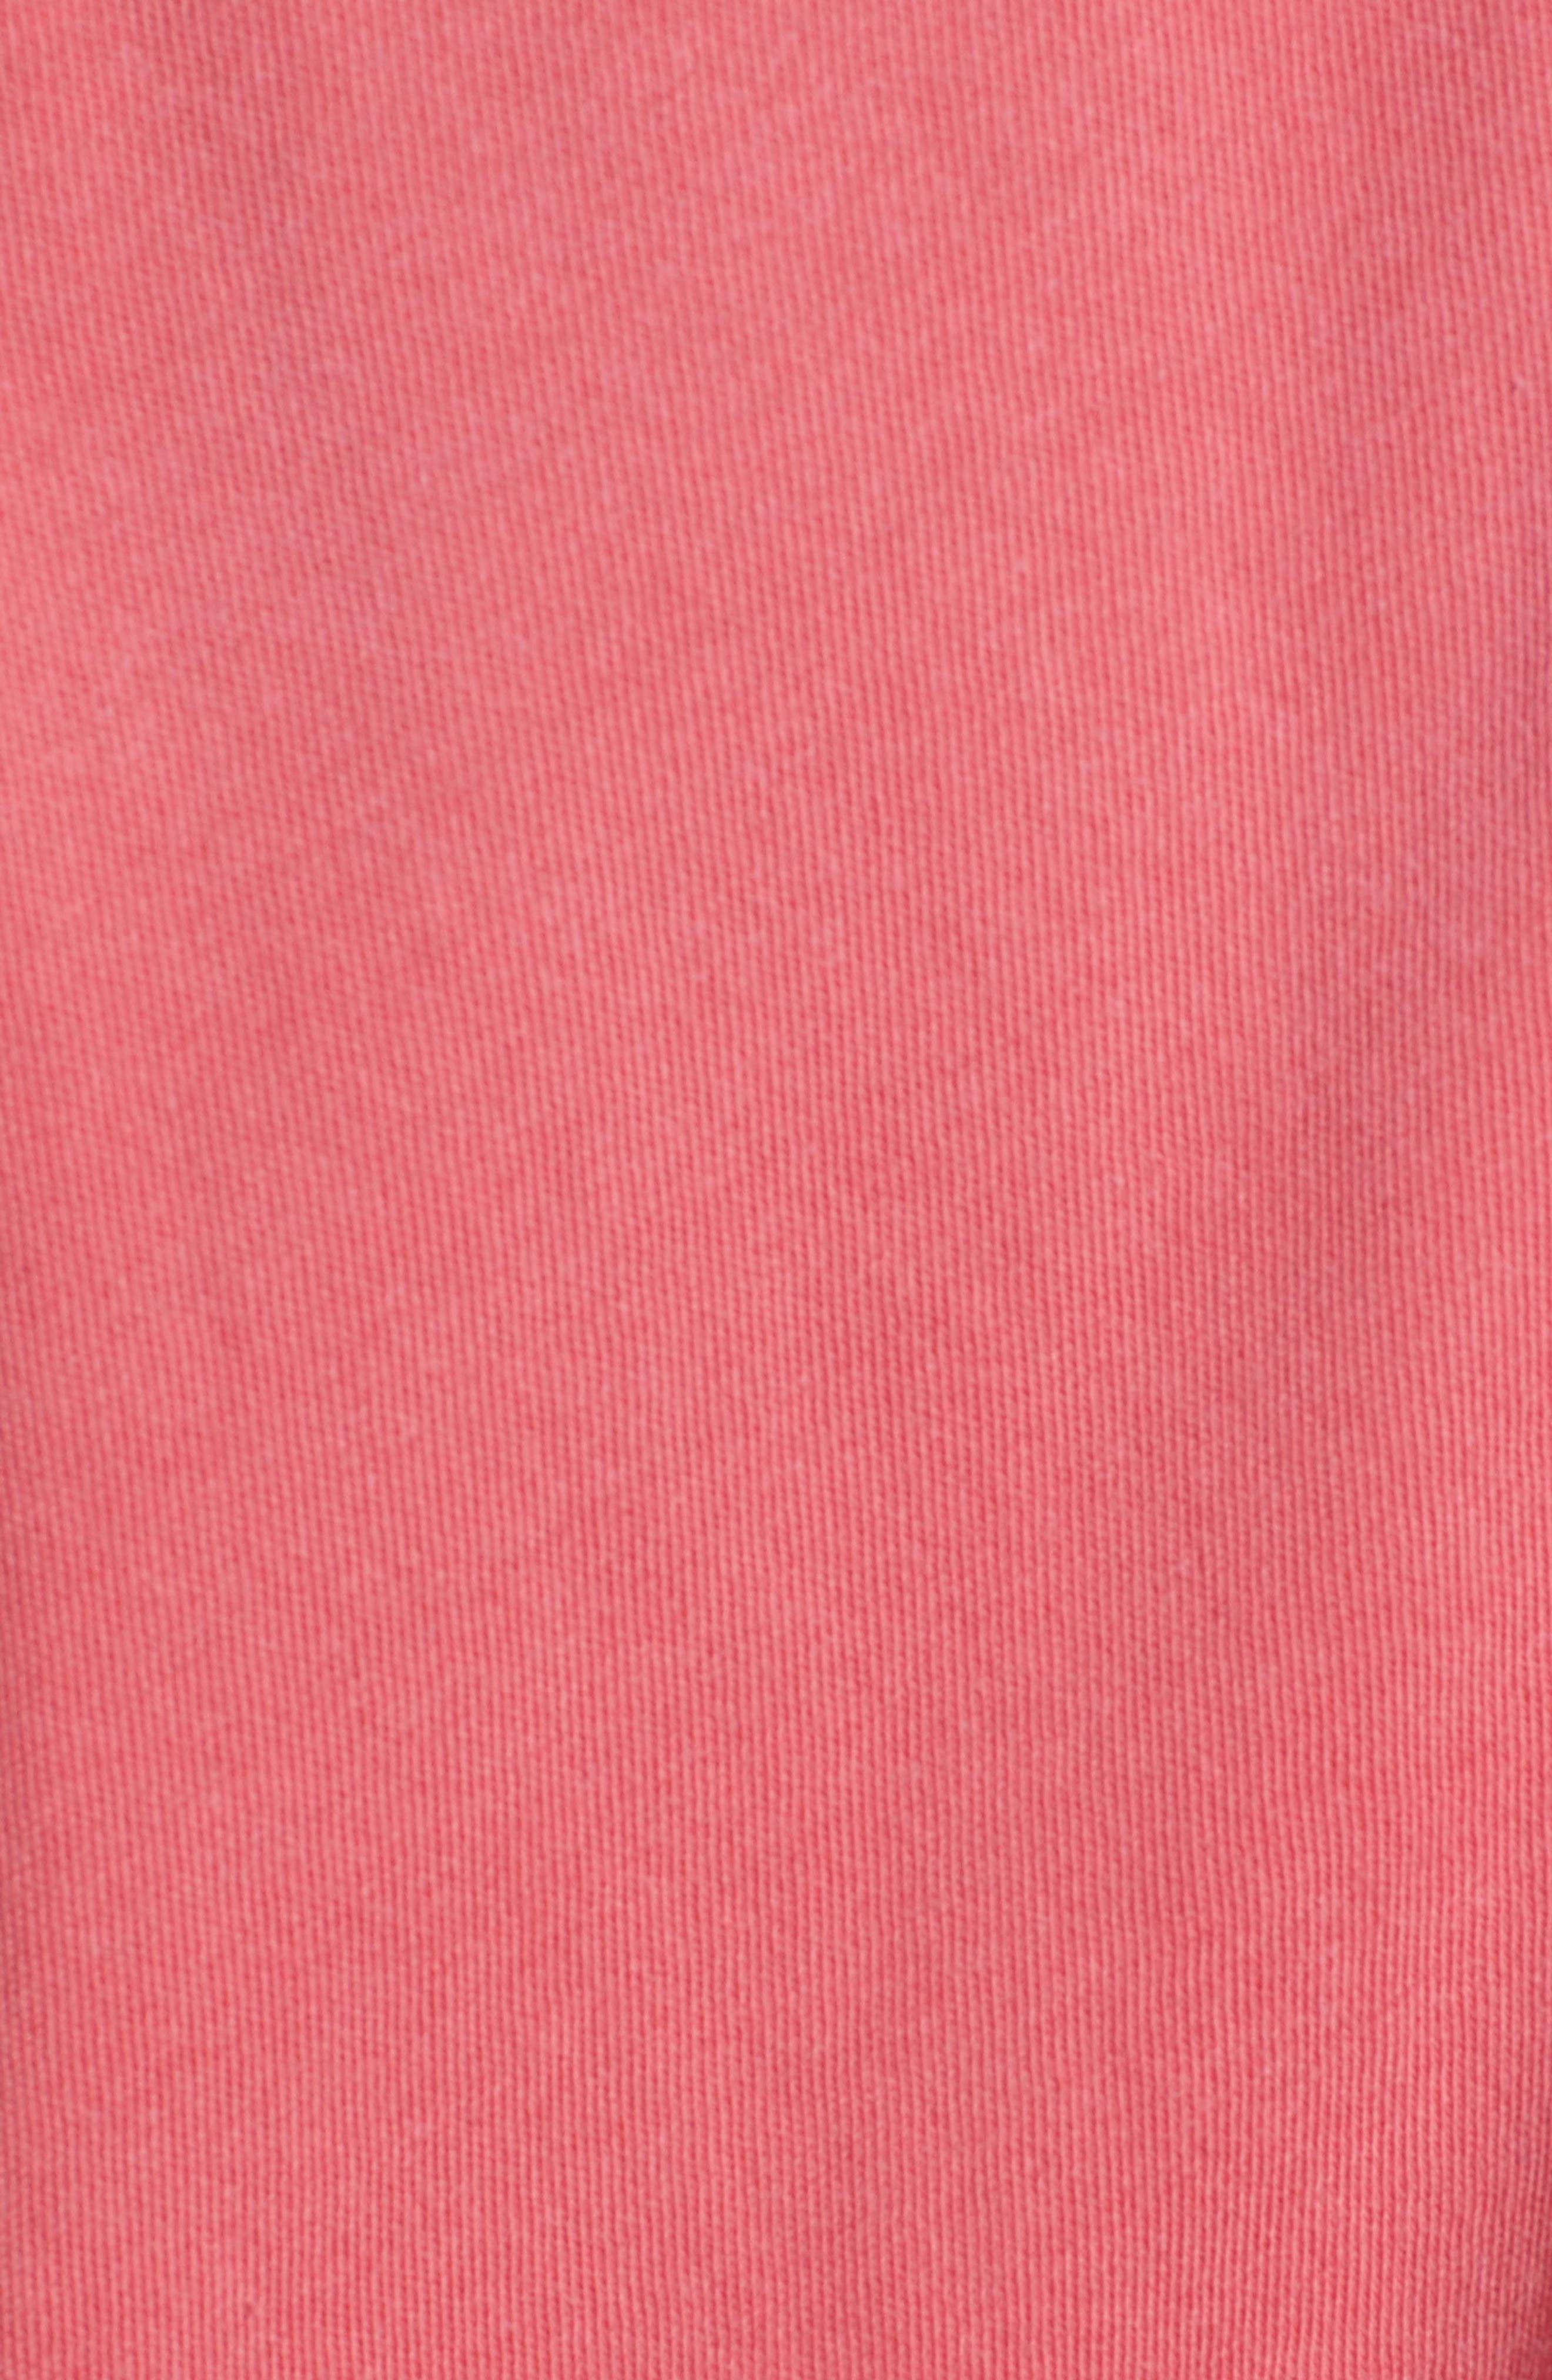 Coke Tee,                             Alternate thumbnail 6, color,                             Washed Red